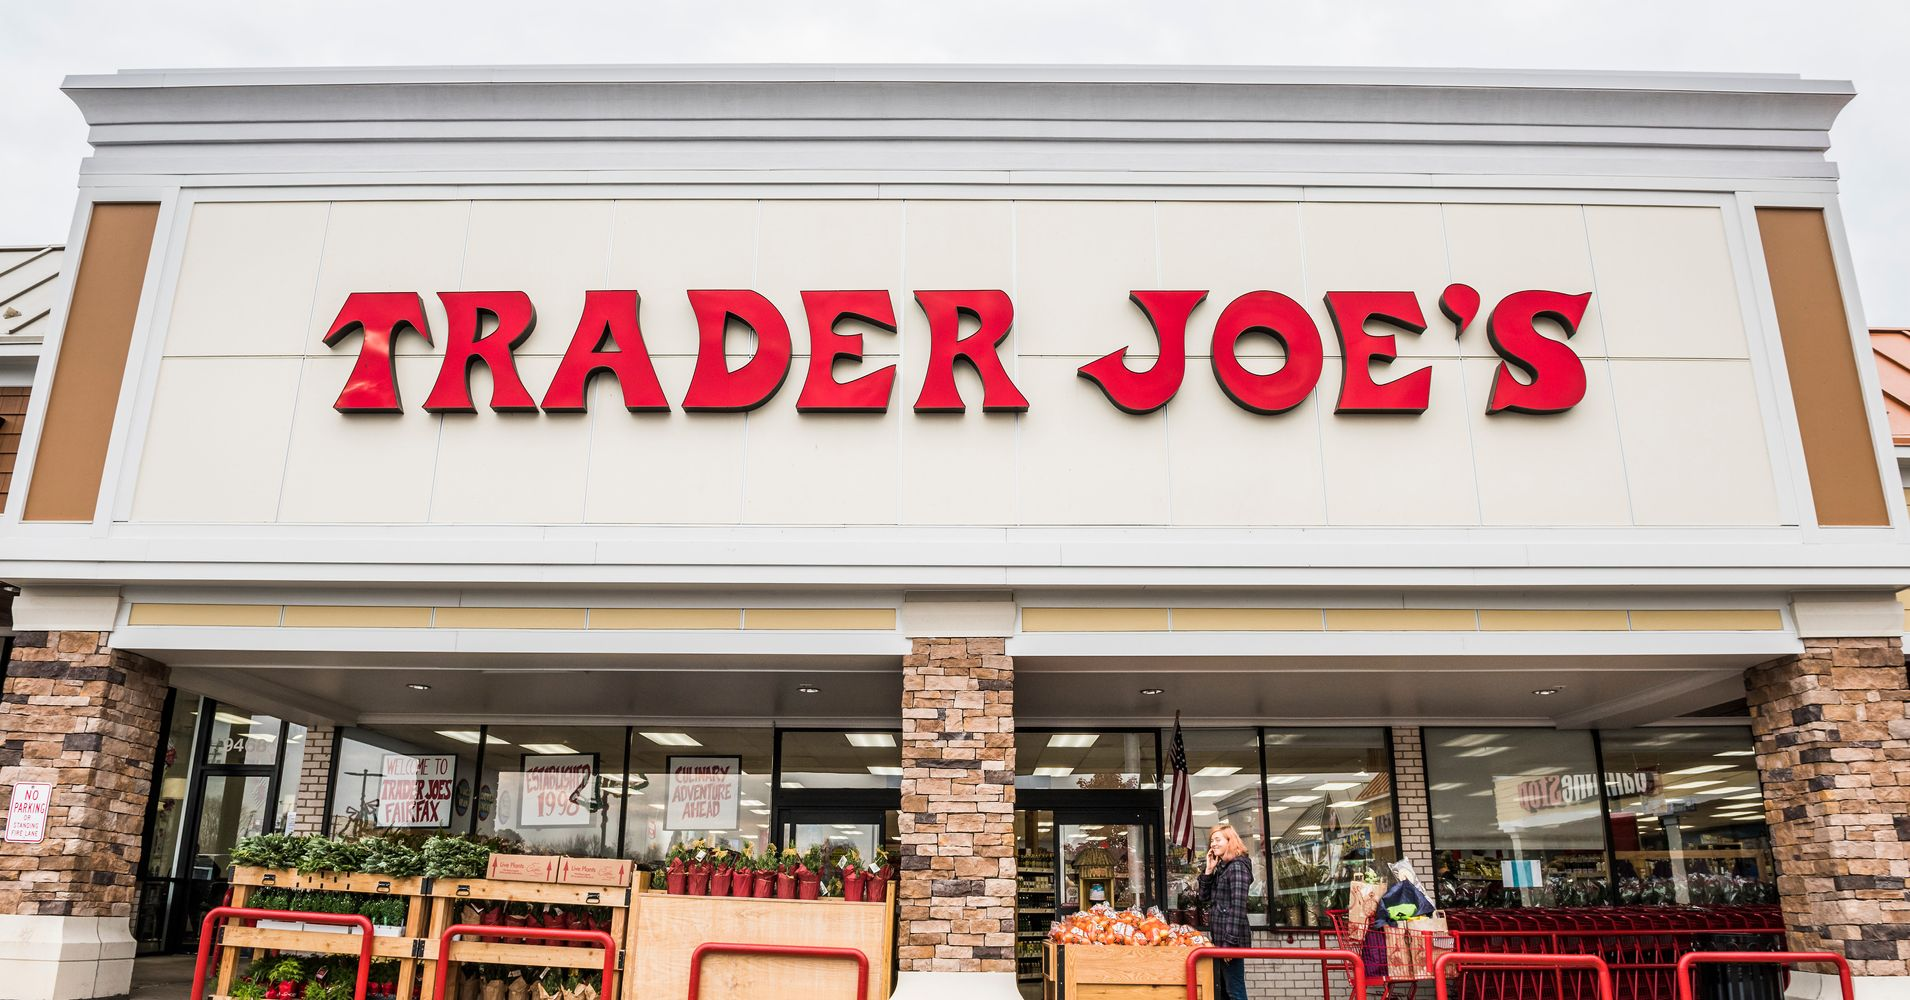 the best trader joe 39 s food products according to the brand itself huffpost. Black Bedroom Furniture Sets. Home Design Ideas